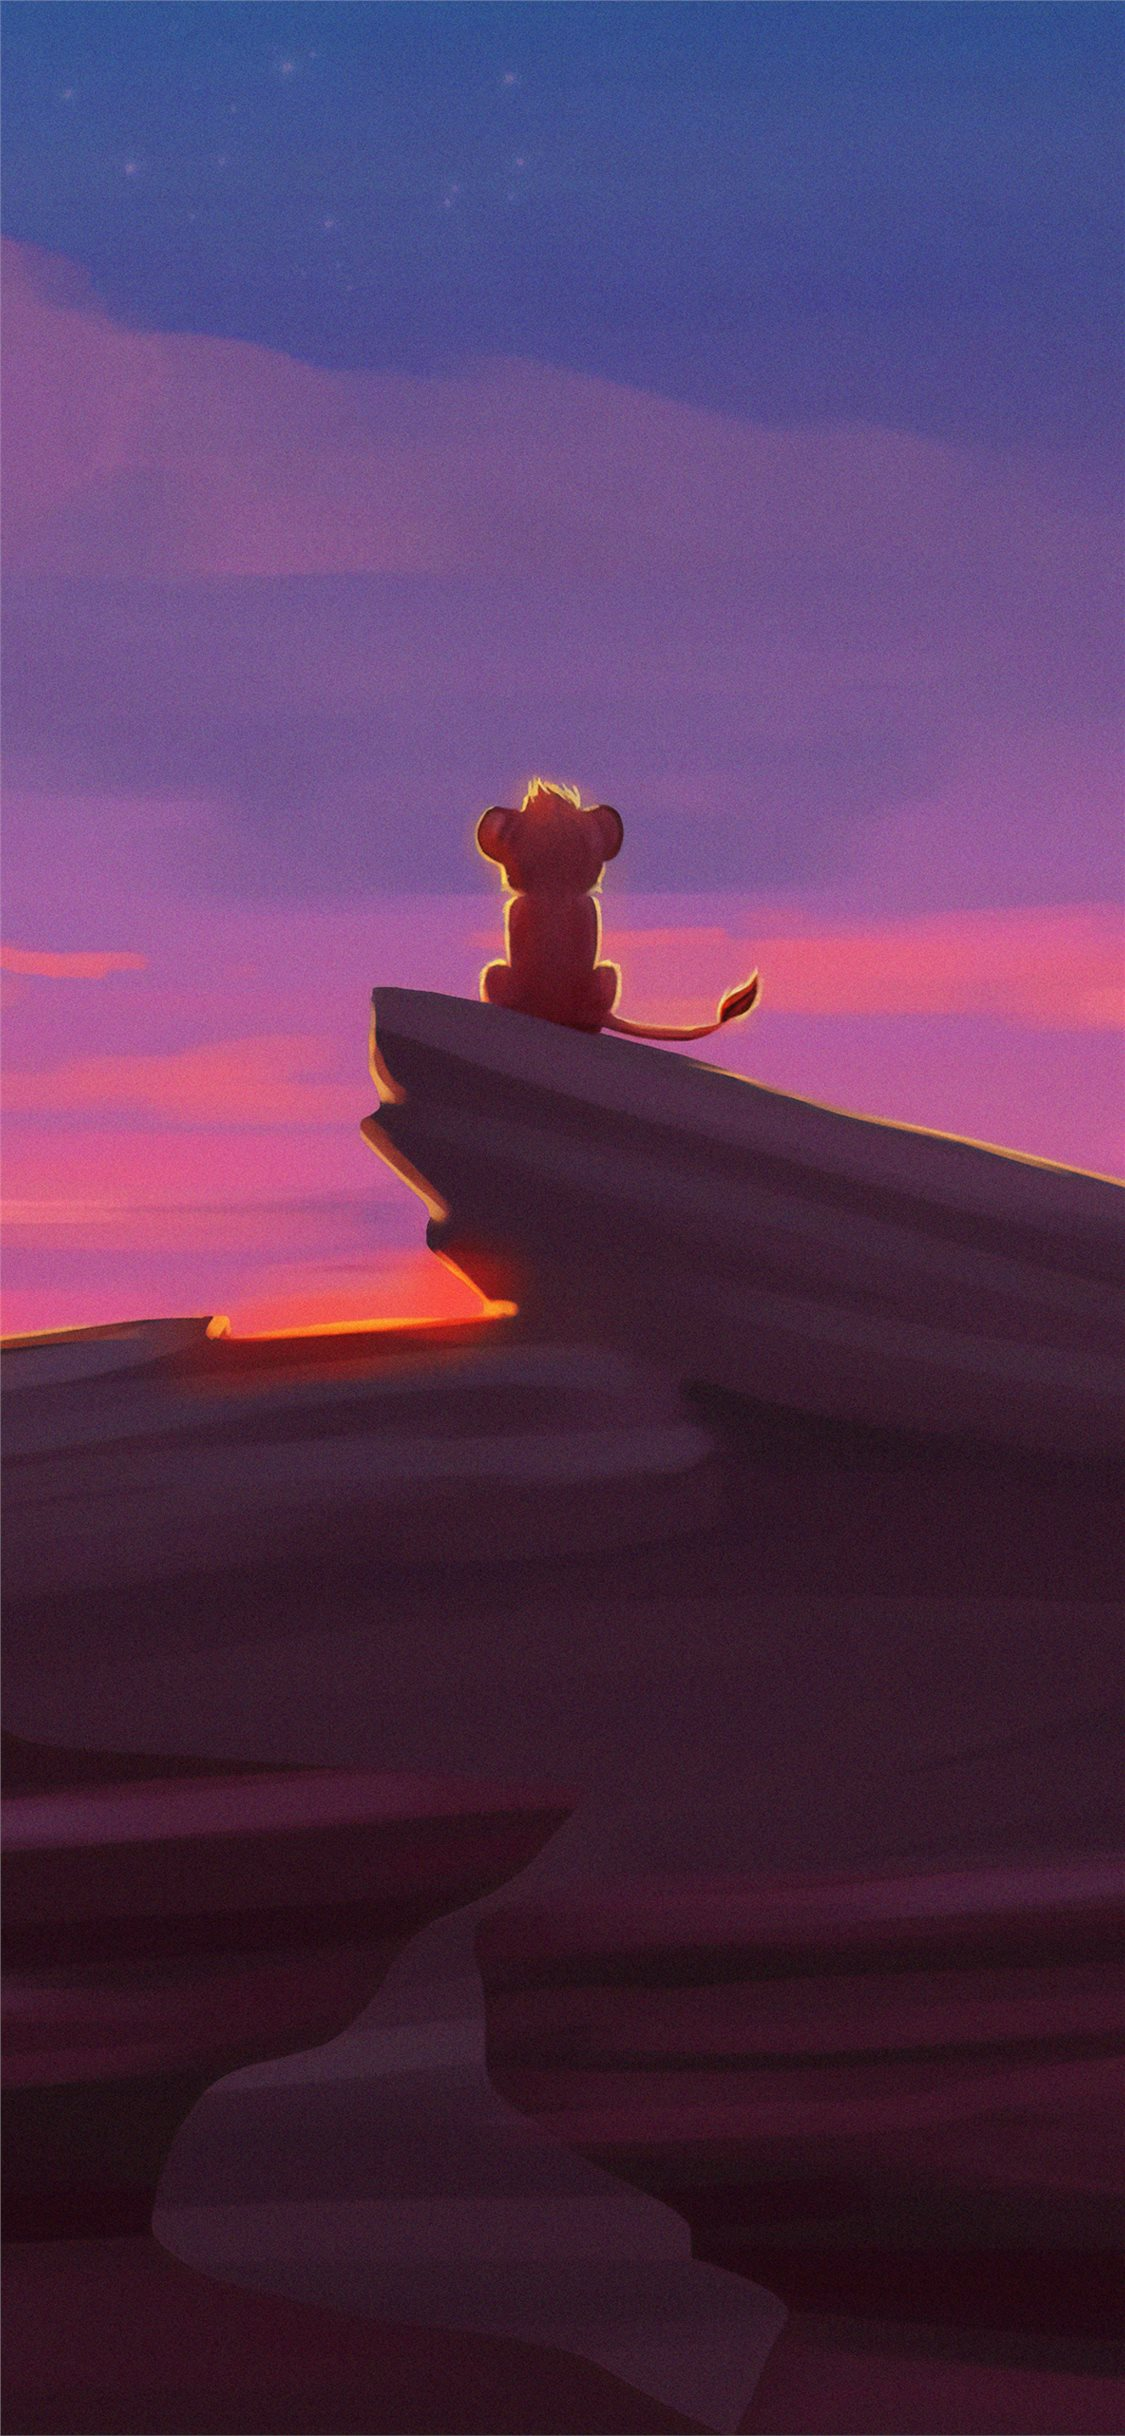 Simba The Lion King Iphone X Wallpapers Free Download